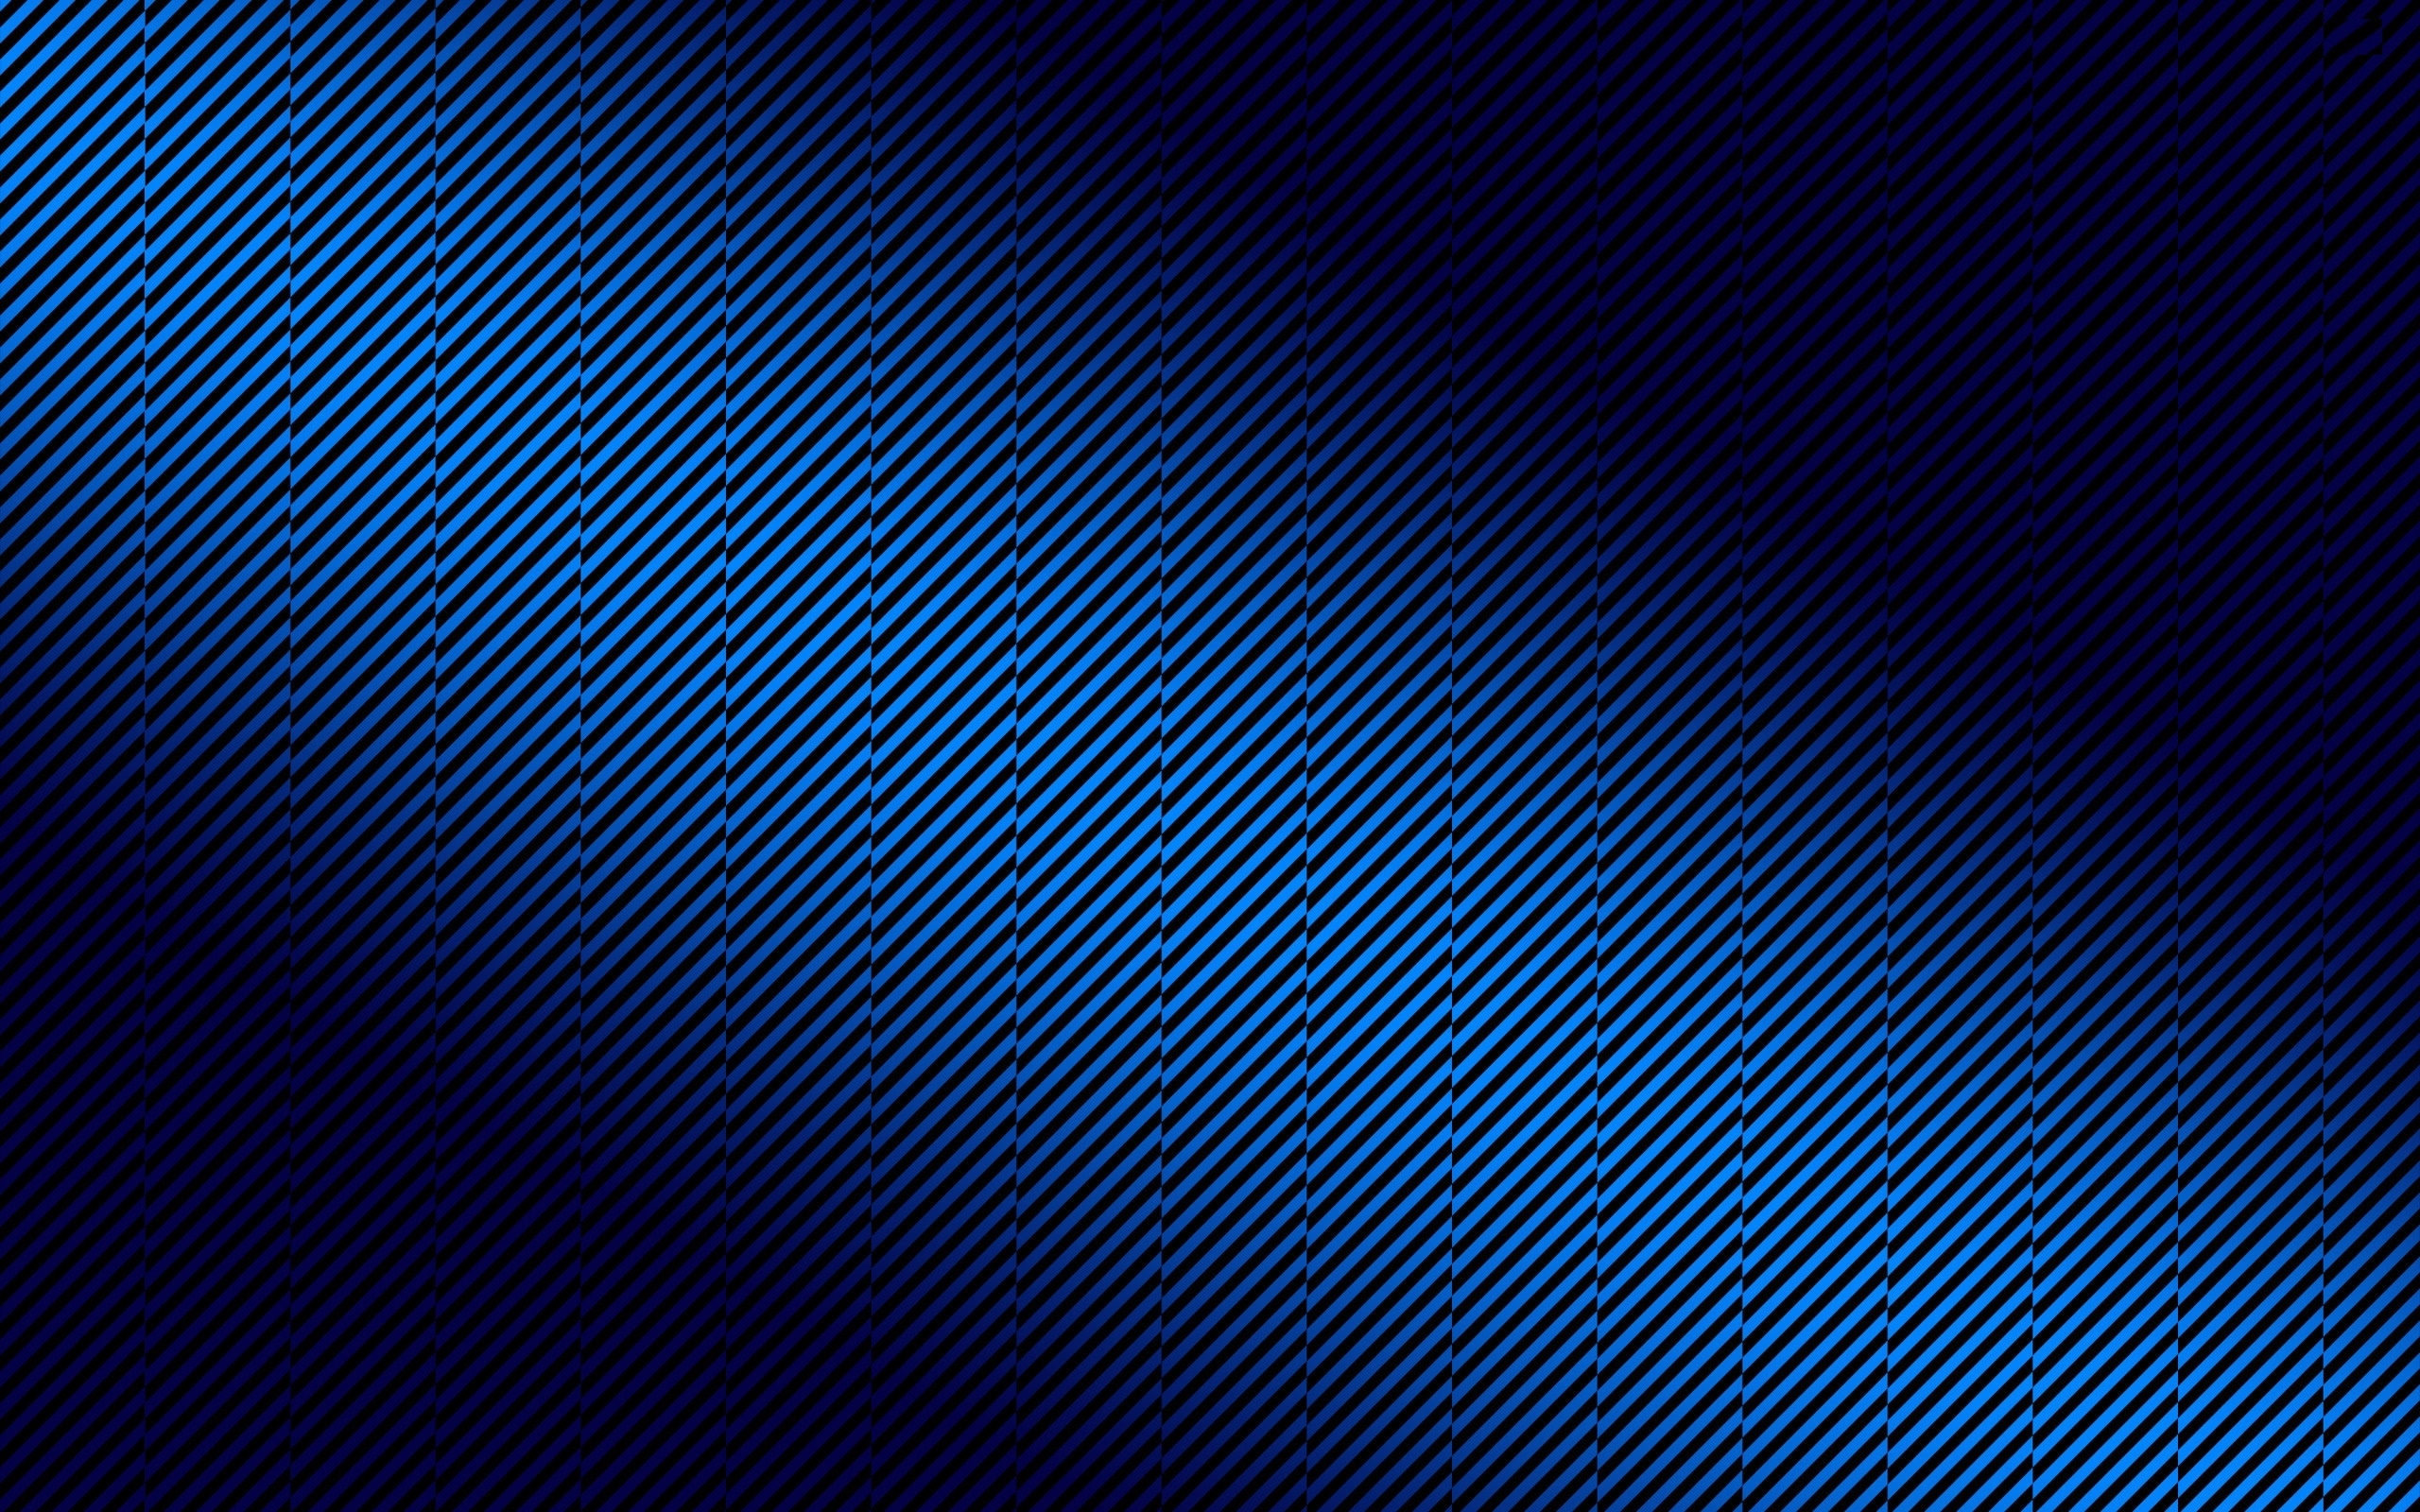 diagonal stripes hd digital art wallpaper. - media file | pixelstalk